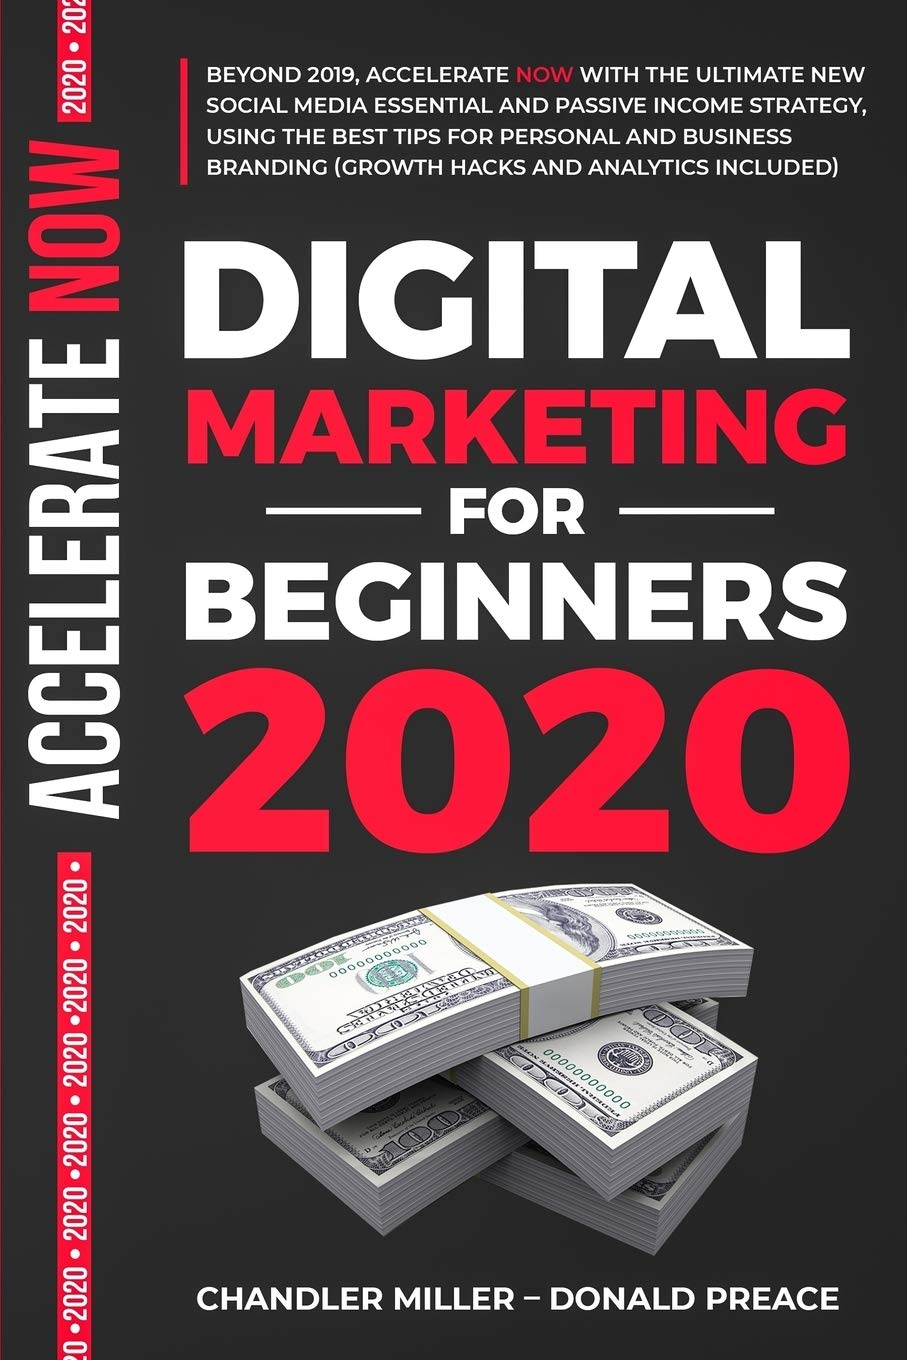 DIGITAL MARKETING FOR BEGINNERS 2020  BEYOND 2019 WITH THE ULTIMATE NEW PASSIVE INCOME STRATEGY USING THE BEST TIPS FOR PERSONAL AND BUSINESS BRANDING  GROWTH HACKS AND ANALYTICS INCLUDED